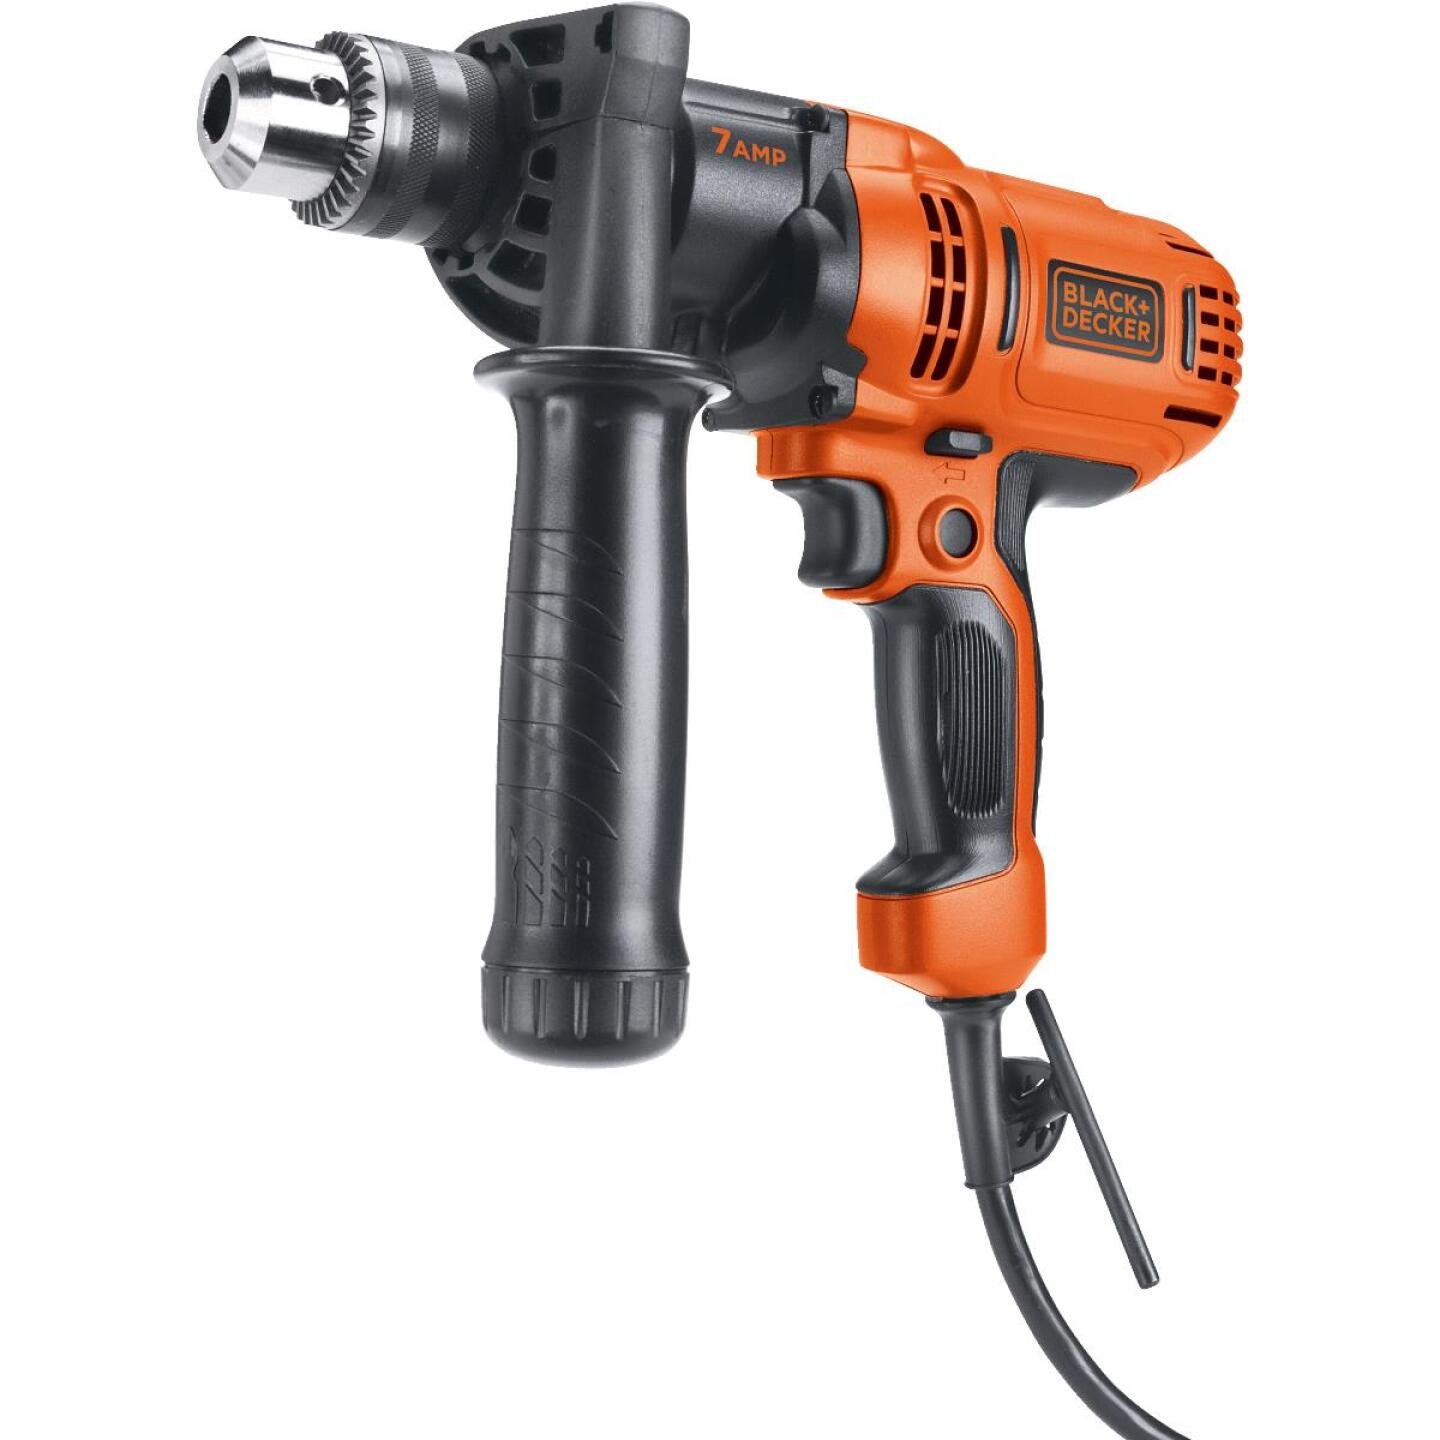 Black & Decker 1/2 In. 7-Amp Keyed Electric Drill/Driver Image 1